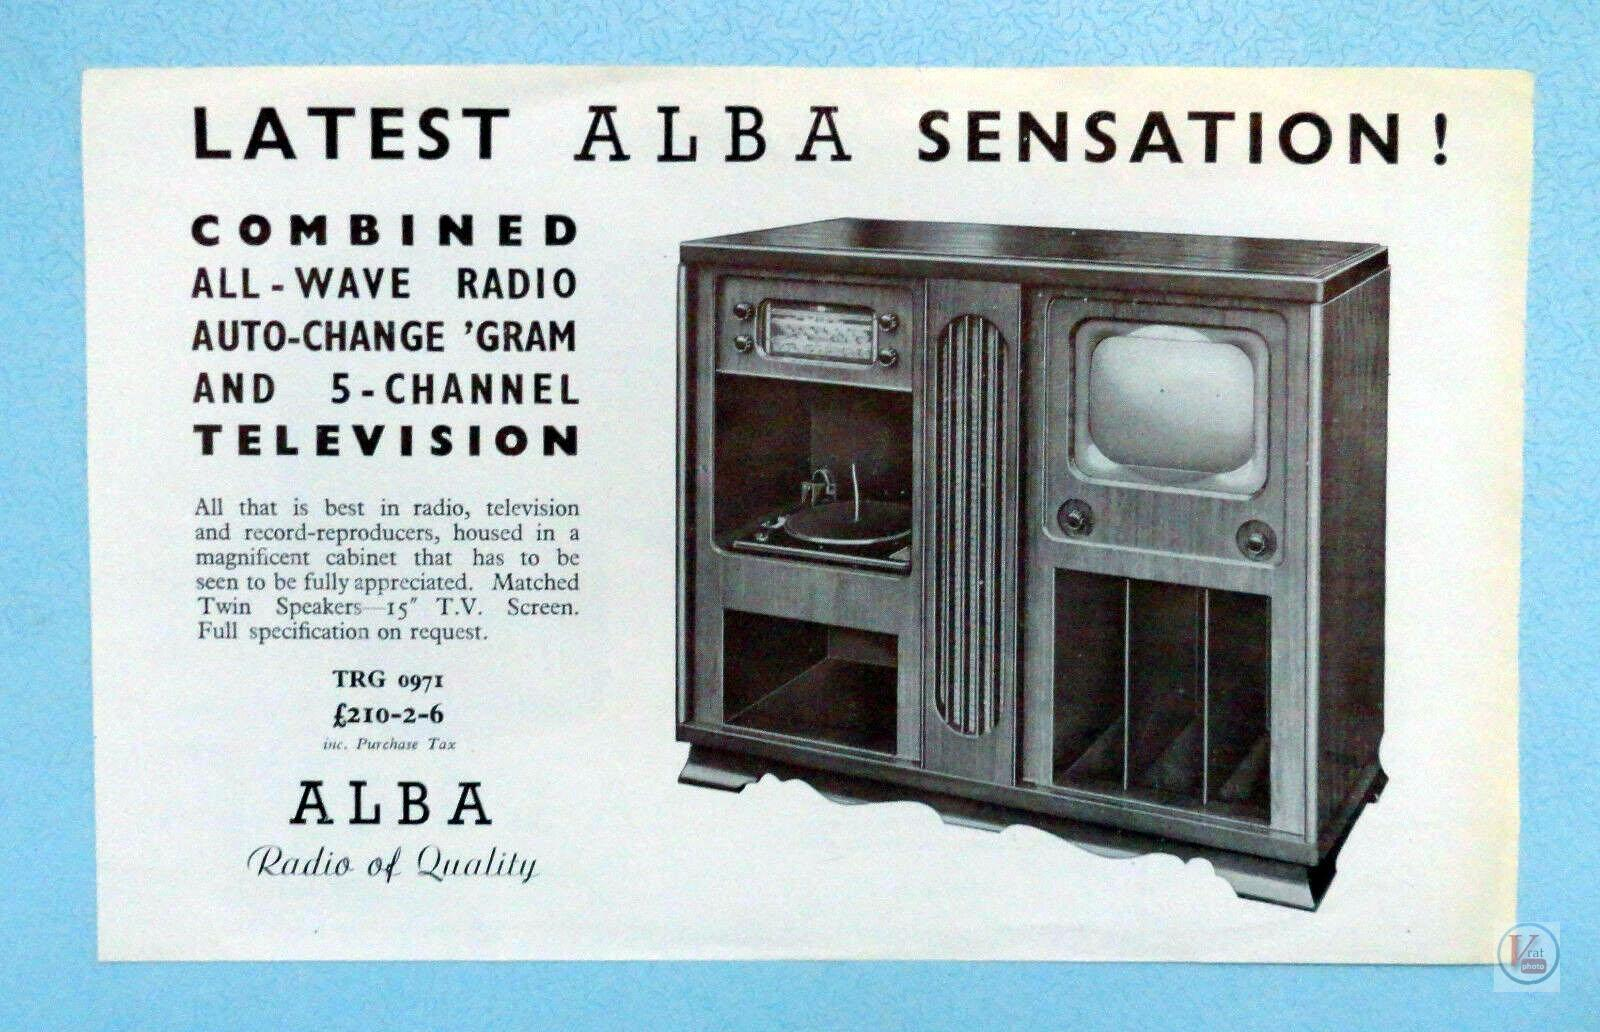 Alba Black & White TV's 16